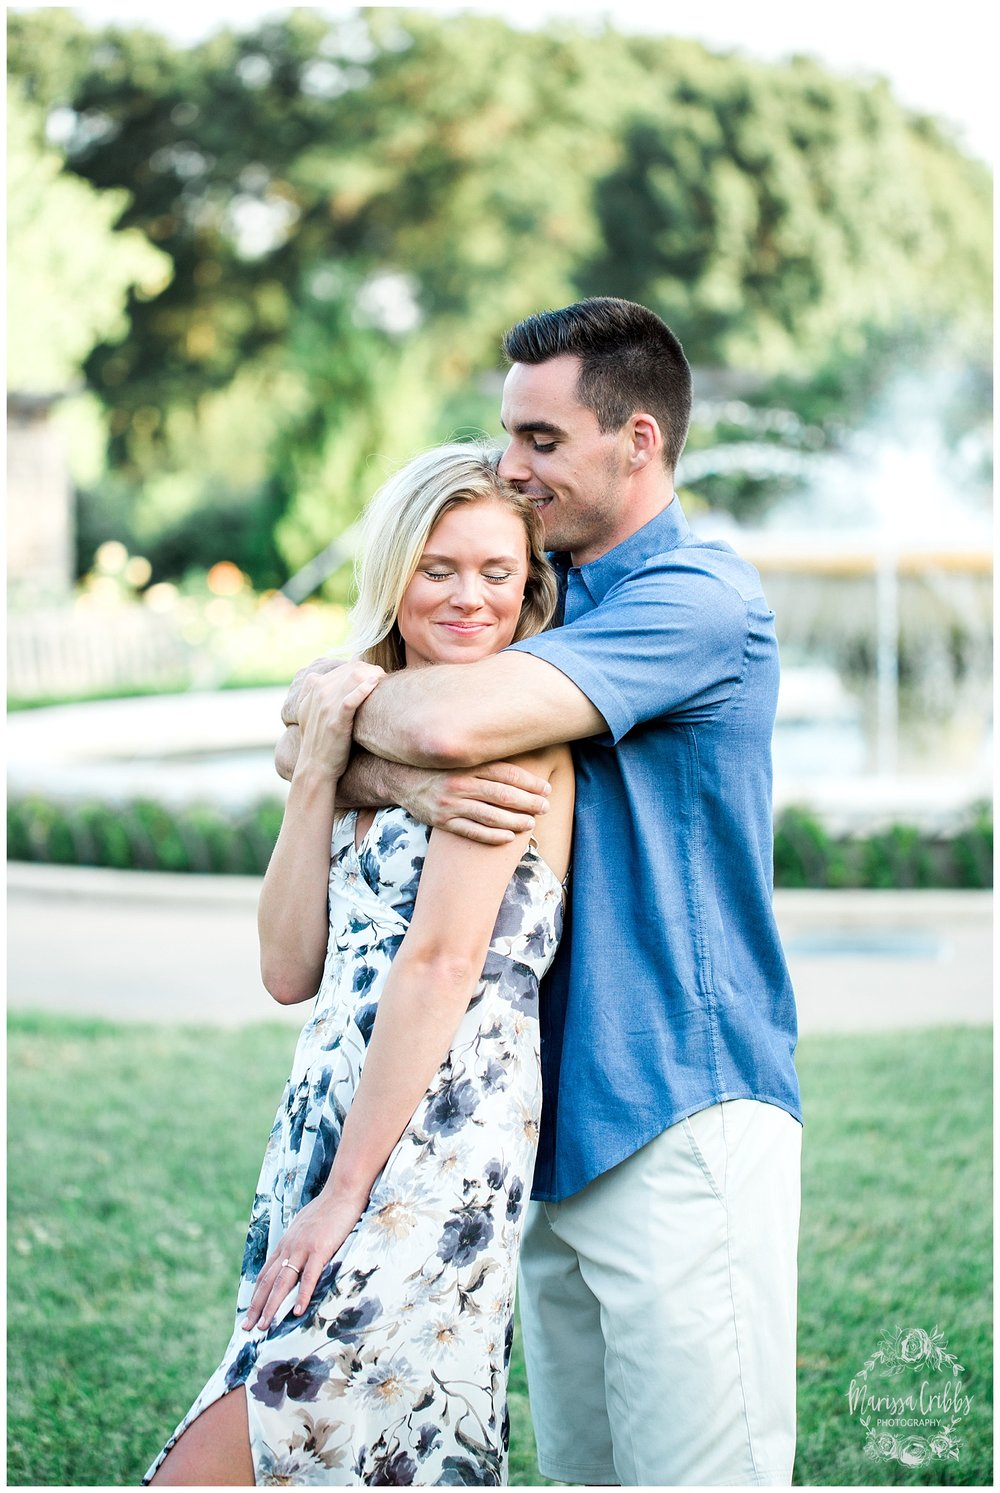 LIZZY & DANE ENGAGEMENT | LOOSE PARK ENGAGEMENT | MARISSA CRIBBS PHOTOGRAPHY_2328.jpg